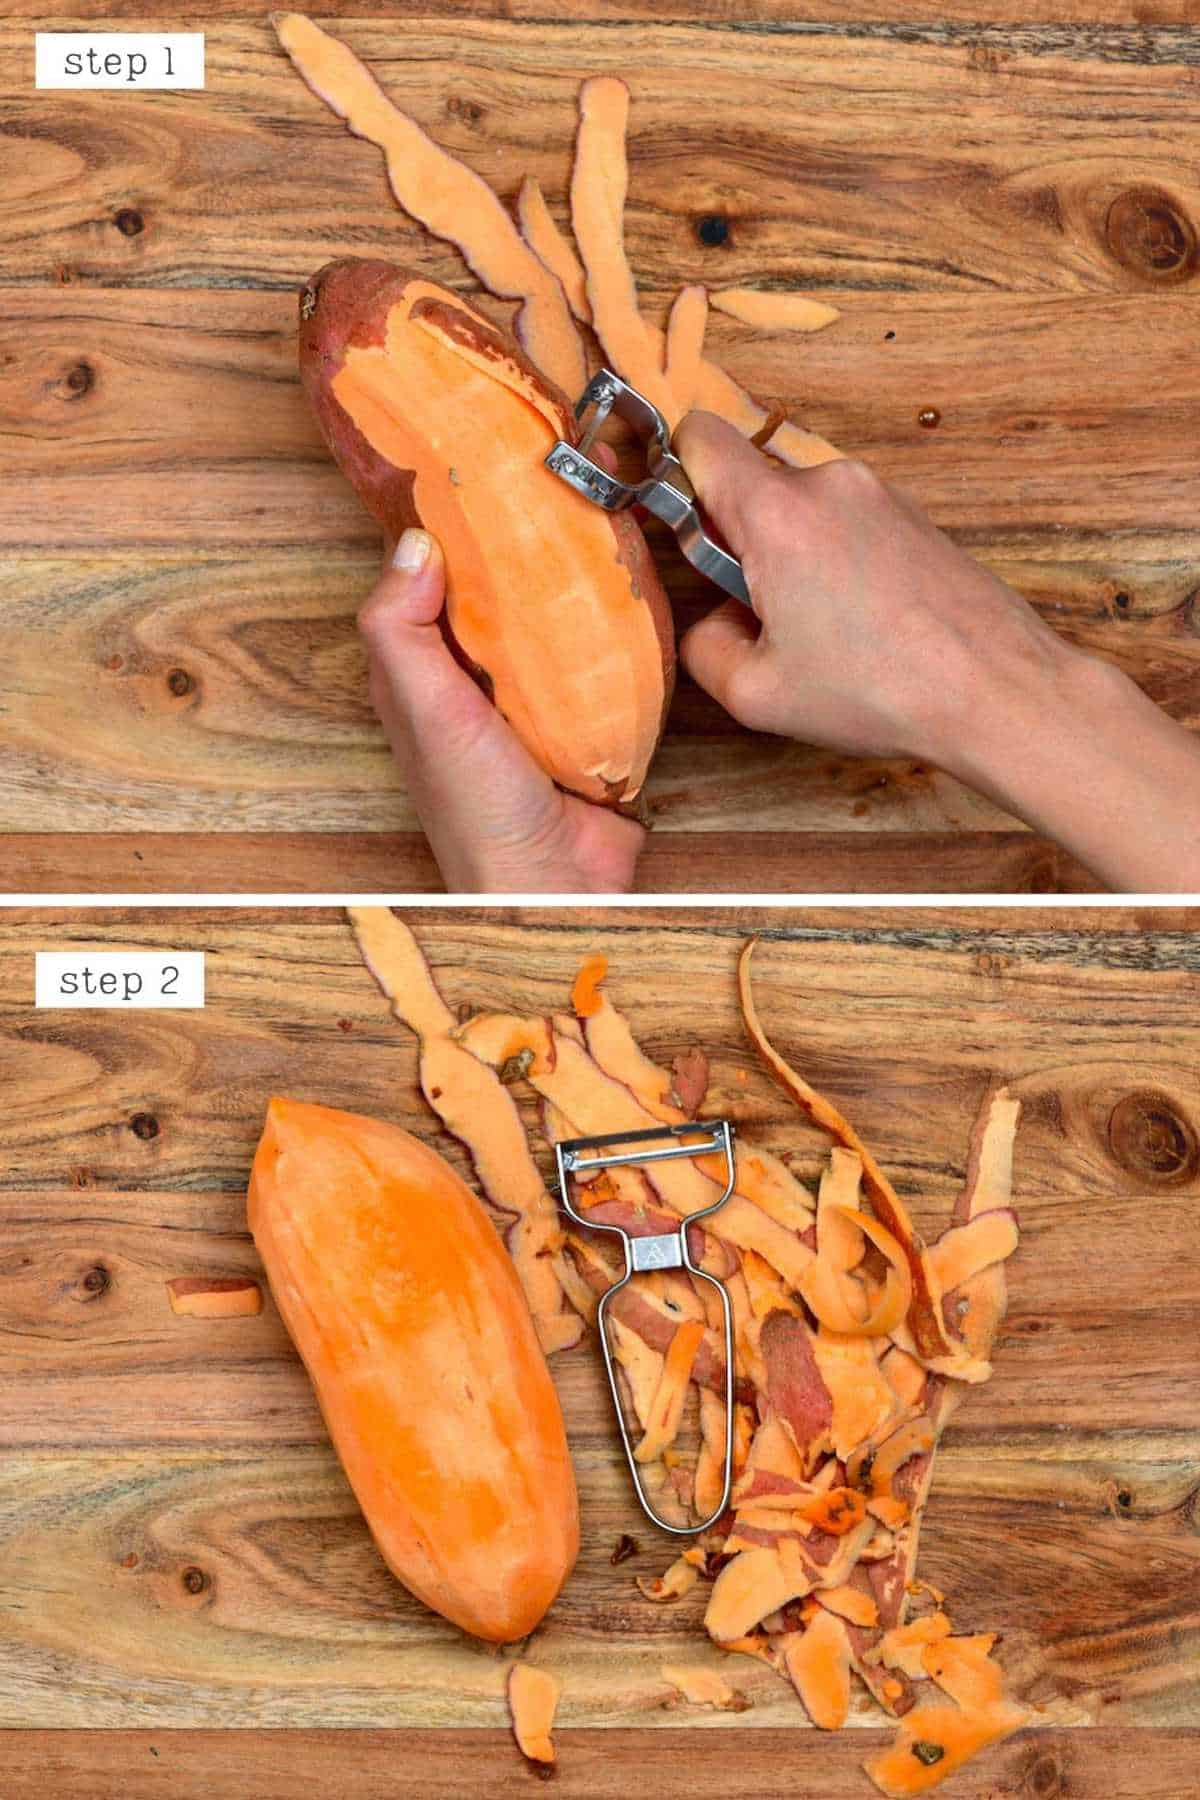 Peeling sweet potato